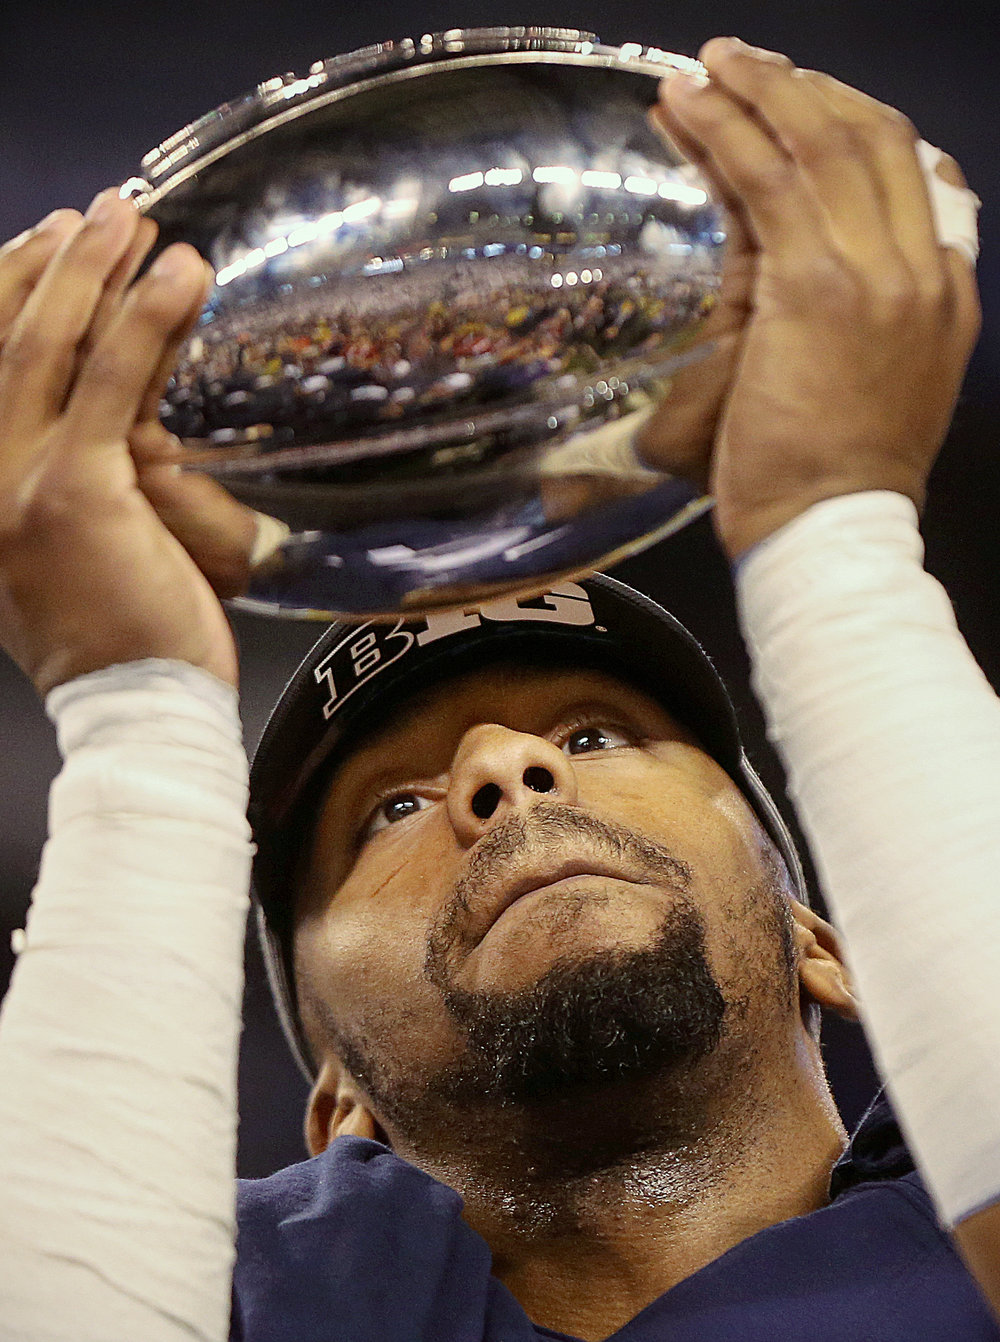 Penn State Nittany Lions cornerback Jordan Smith (12) checks out the Stagg championship trophy after winning the Big Ten championship against the Wisconsin Badgers, at Lucas Oil Stadium, Indianapolis, Saturday, Oct. 3, 2016.